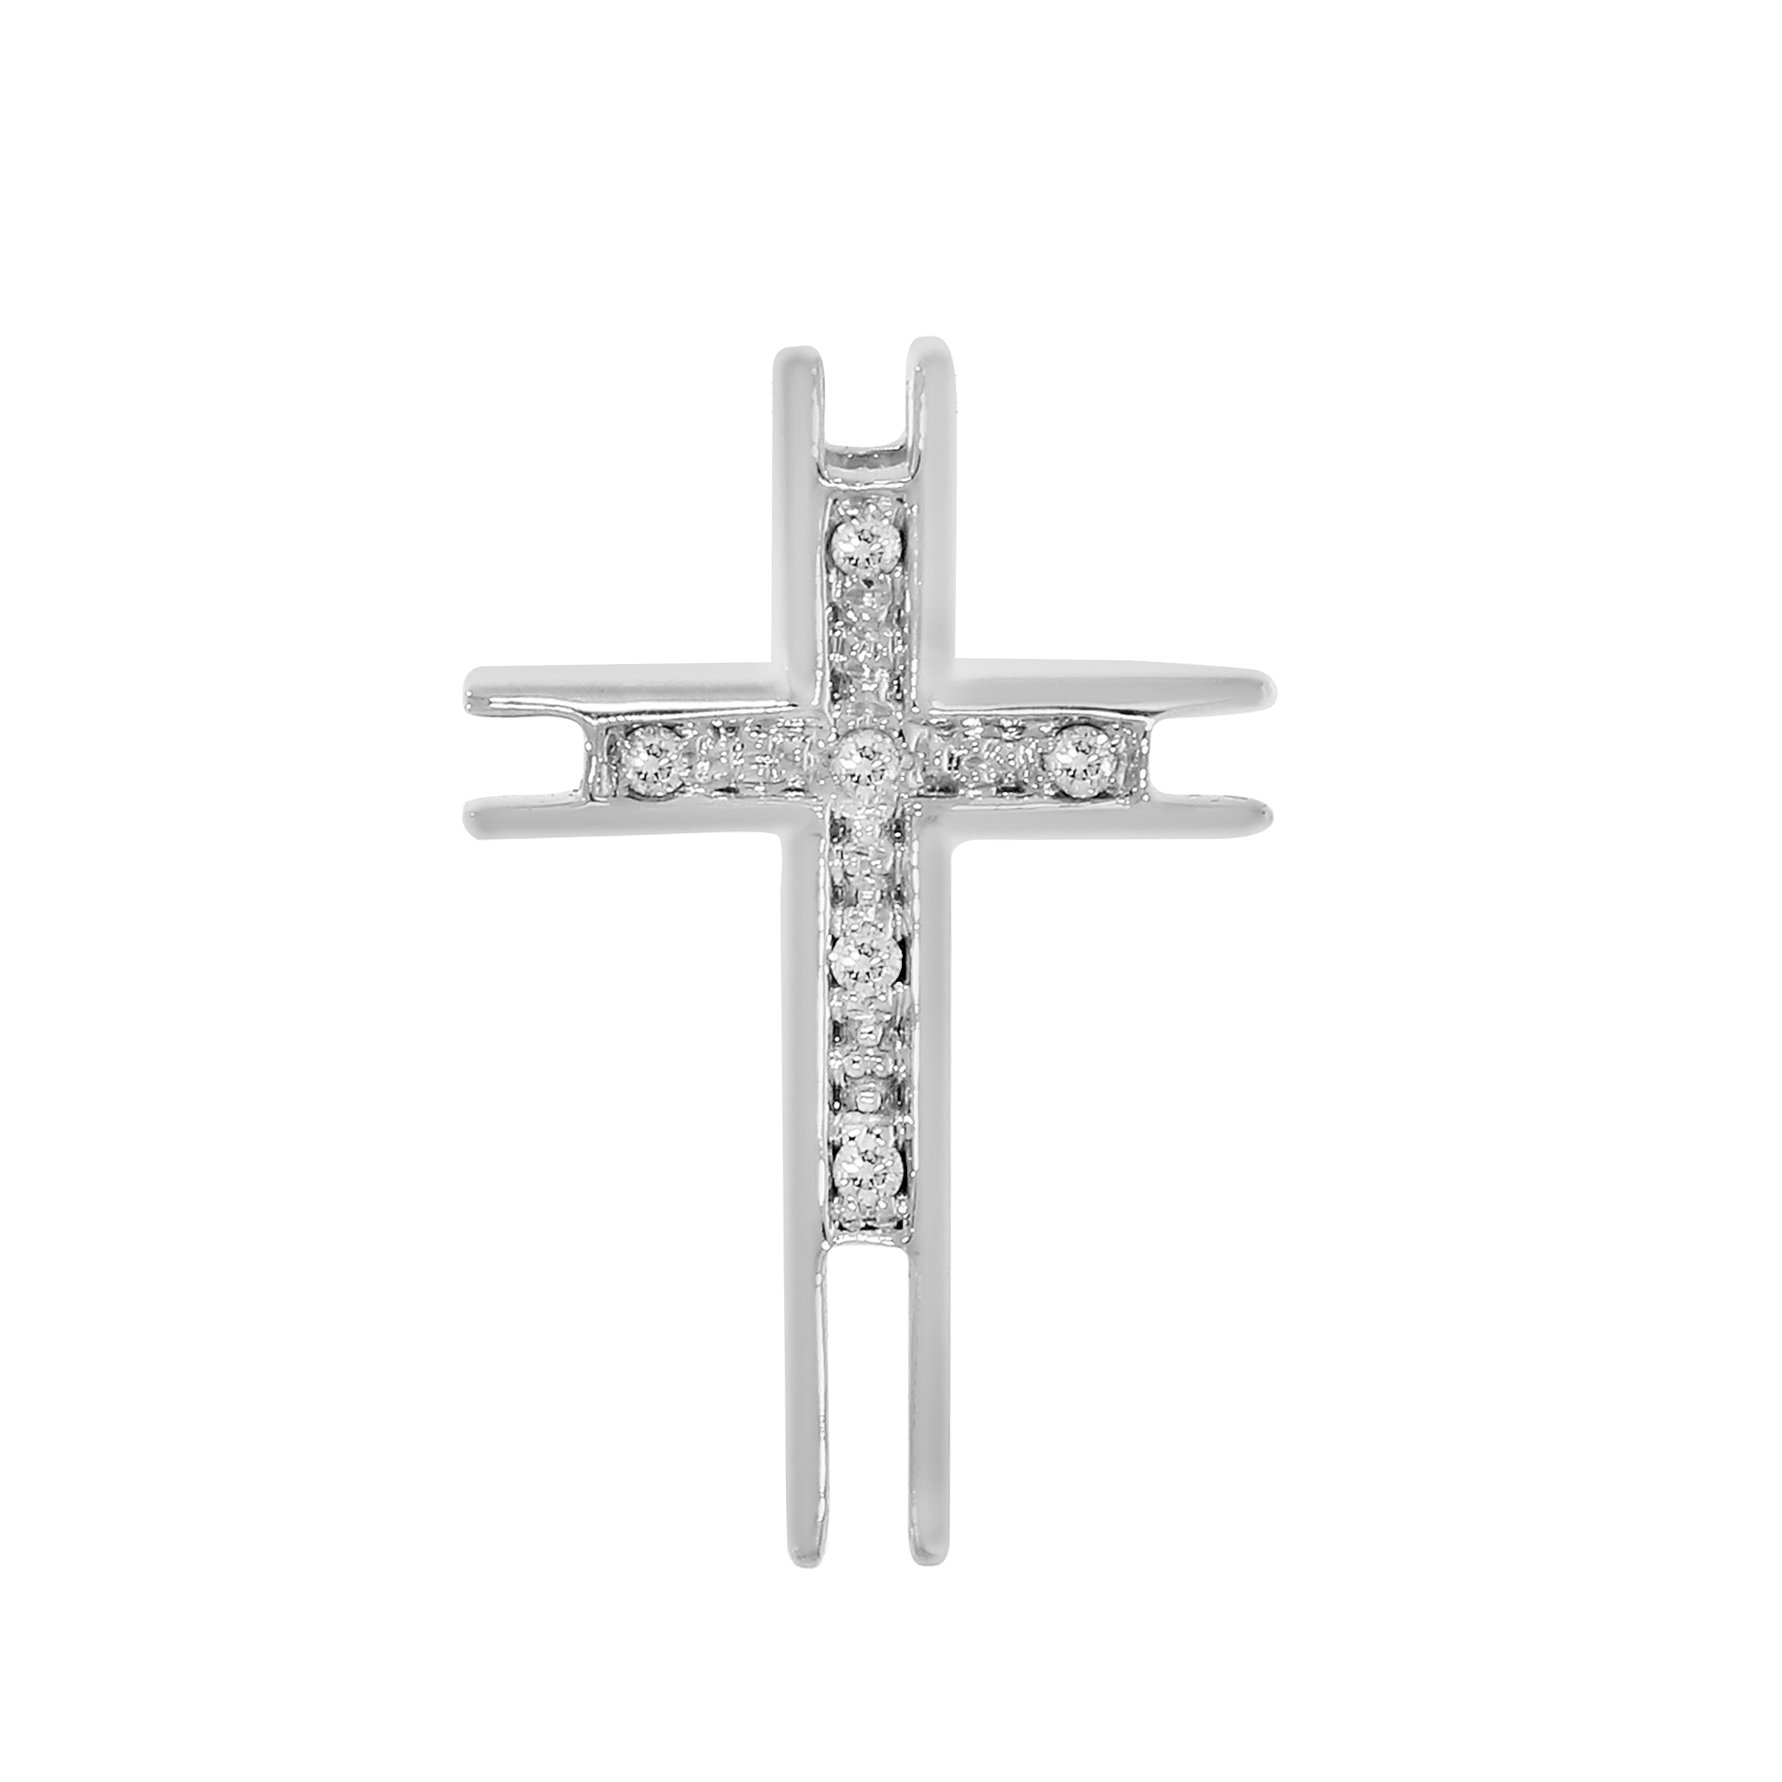 IGI-Certified 0.05 cttw 18k White Gold Round-Cut Natural Diamond Unisex Cross Pendant